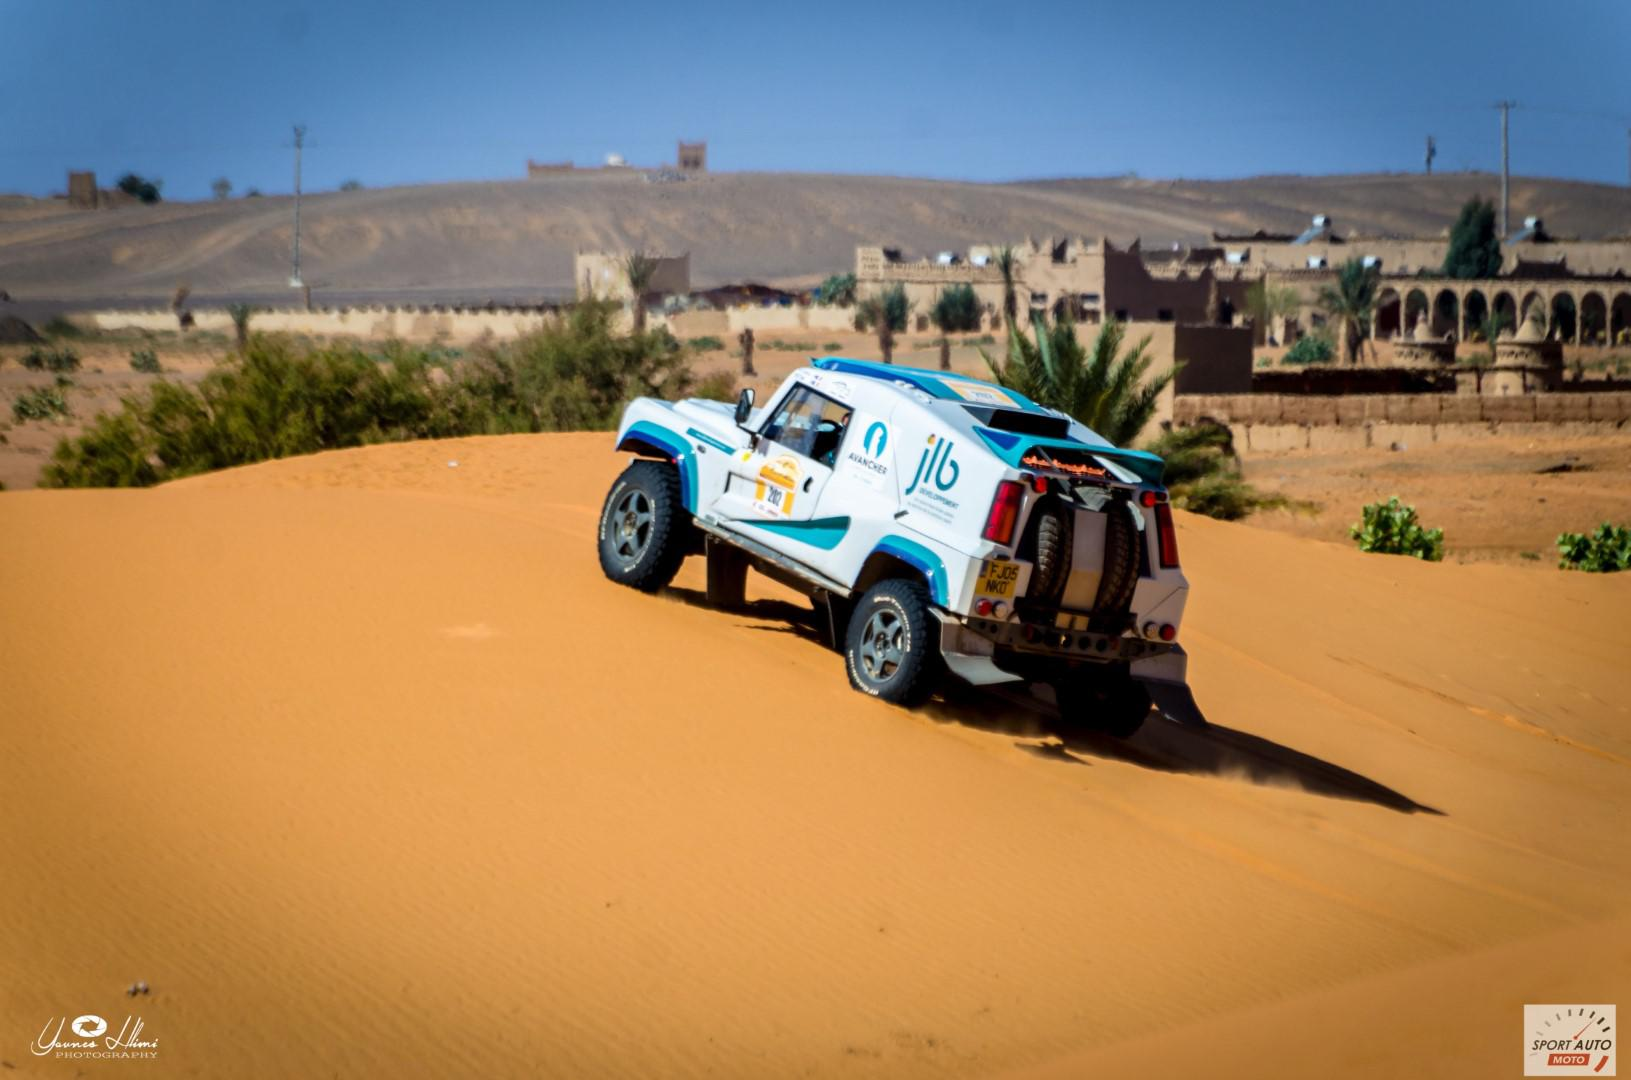 rallye-hearts-of-morrocco-2017-besson-remporte-la-premiere-edition-449-17.jpg